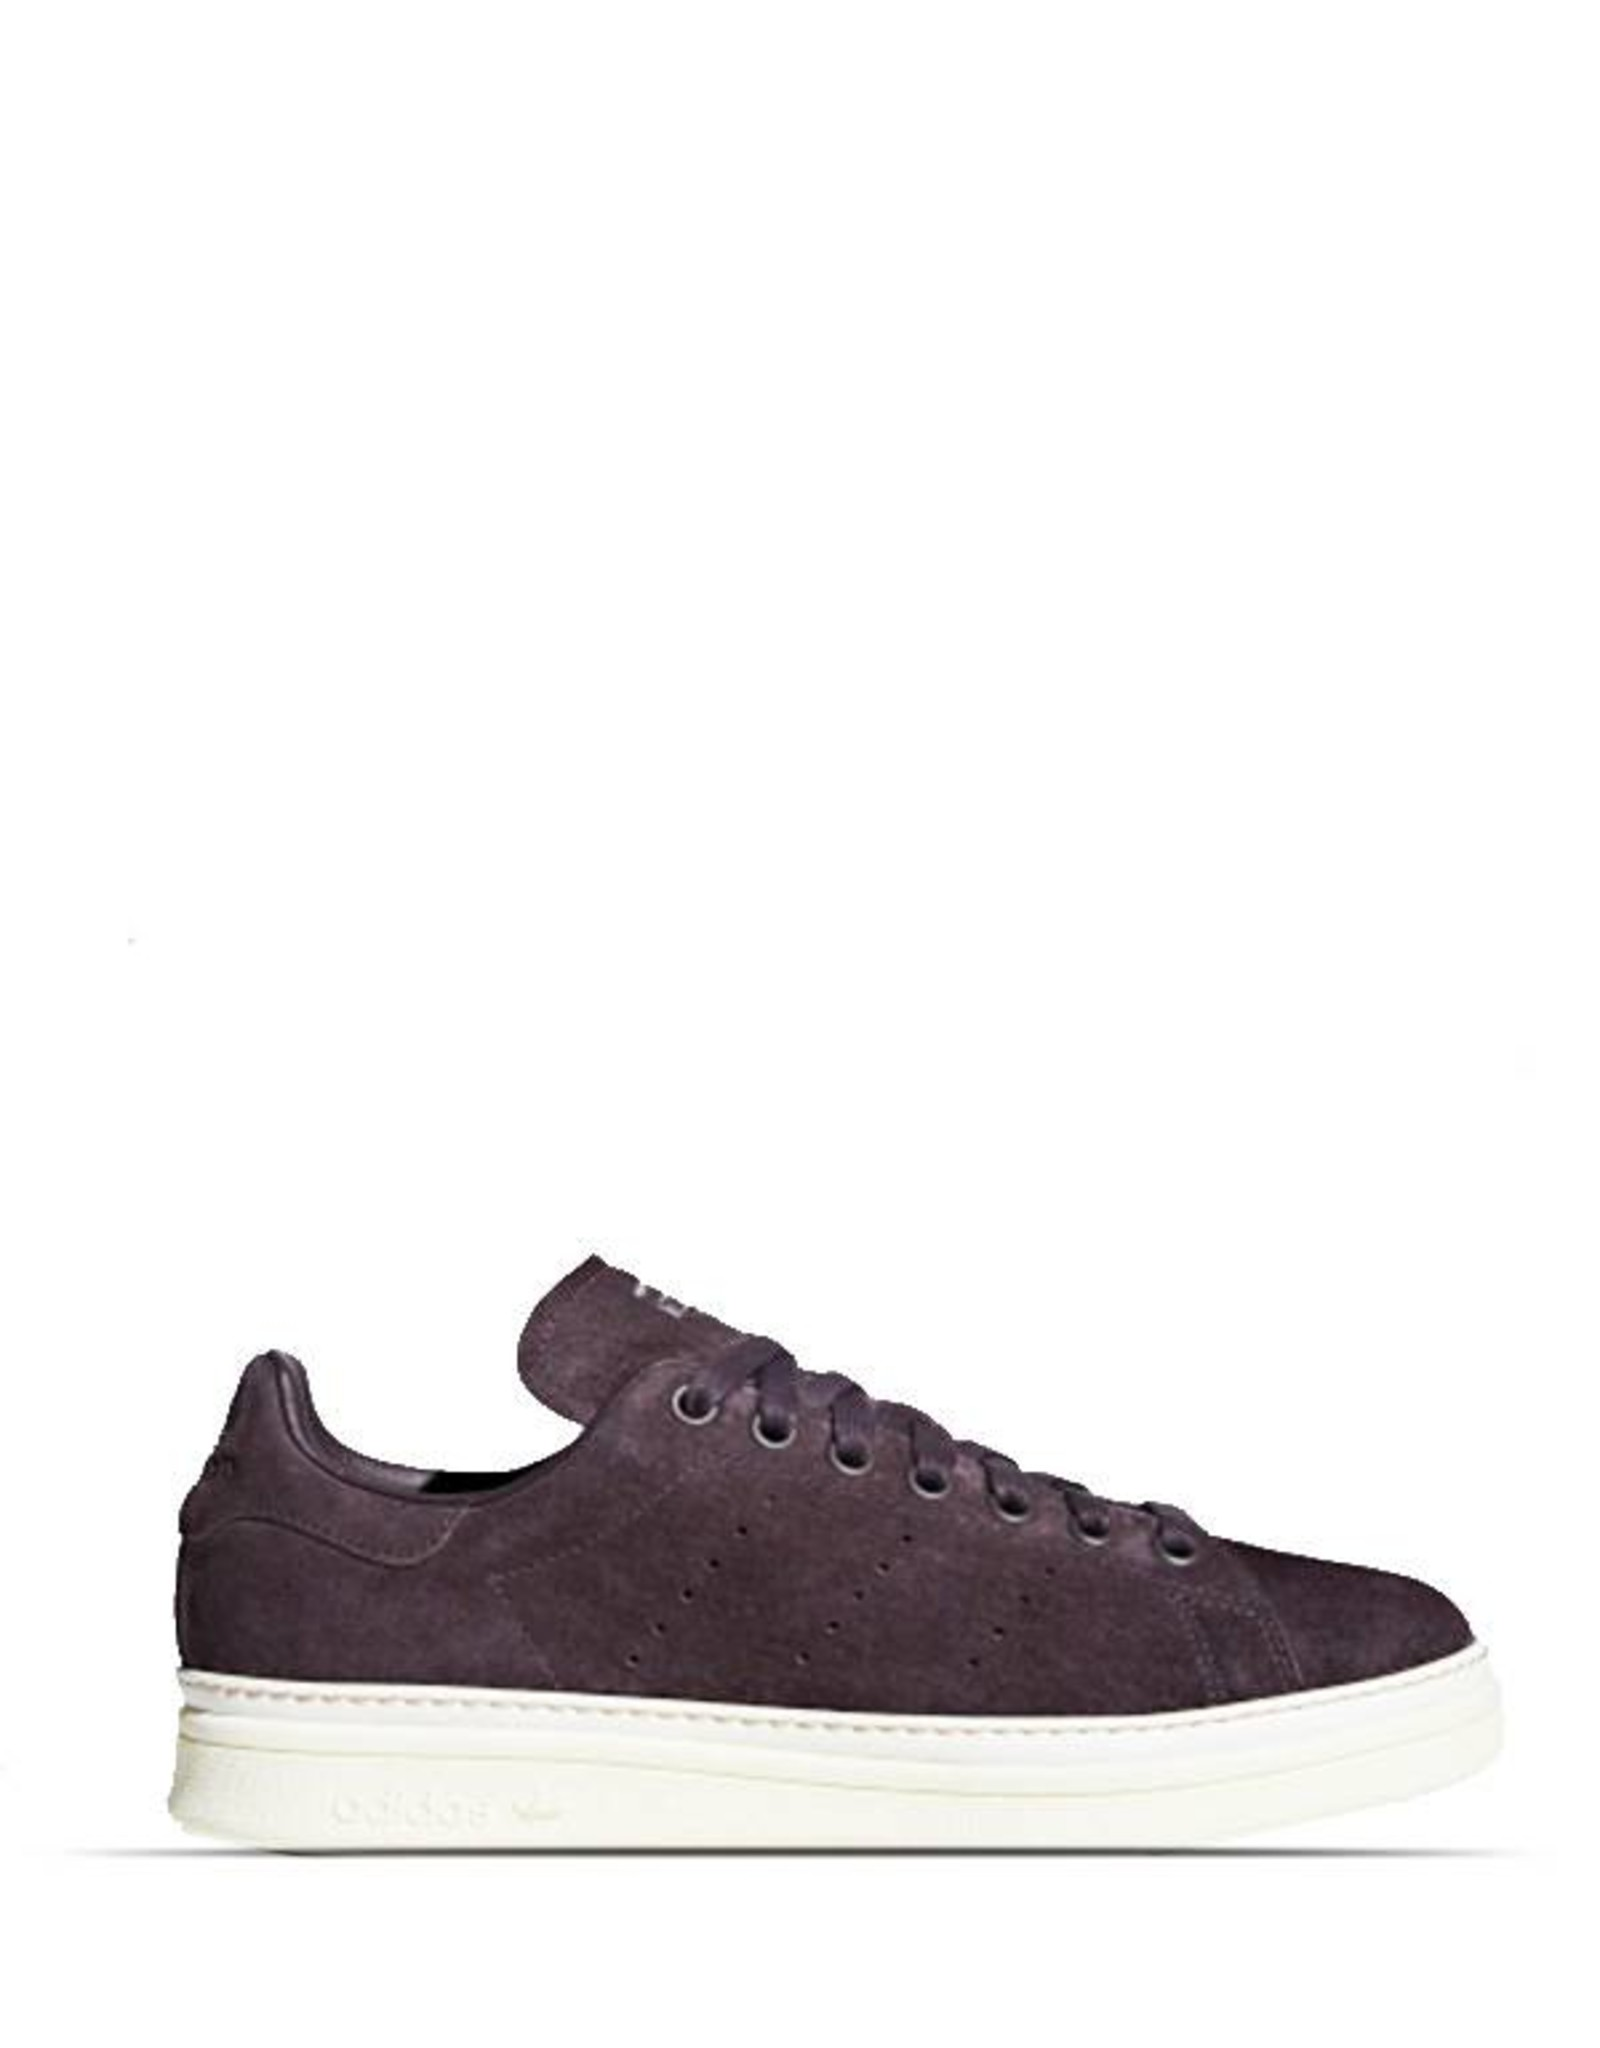 ADIDAS STAN SMITH NEW BOLD PURPLE